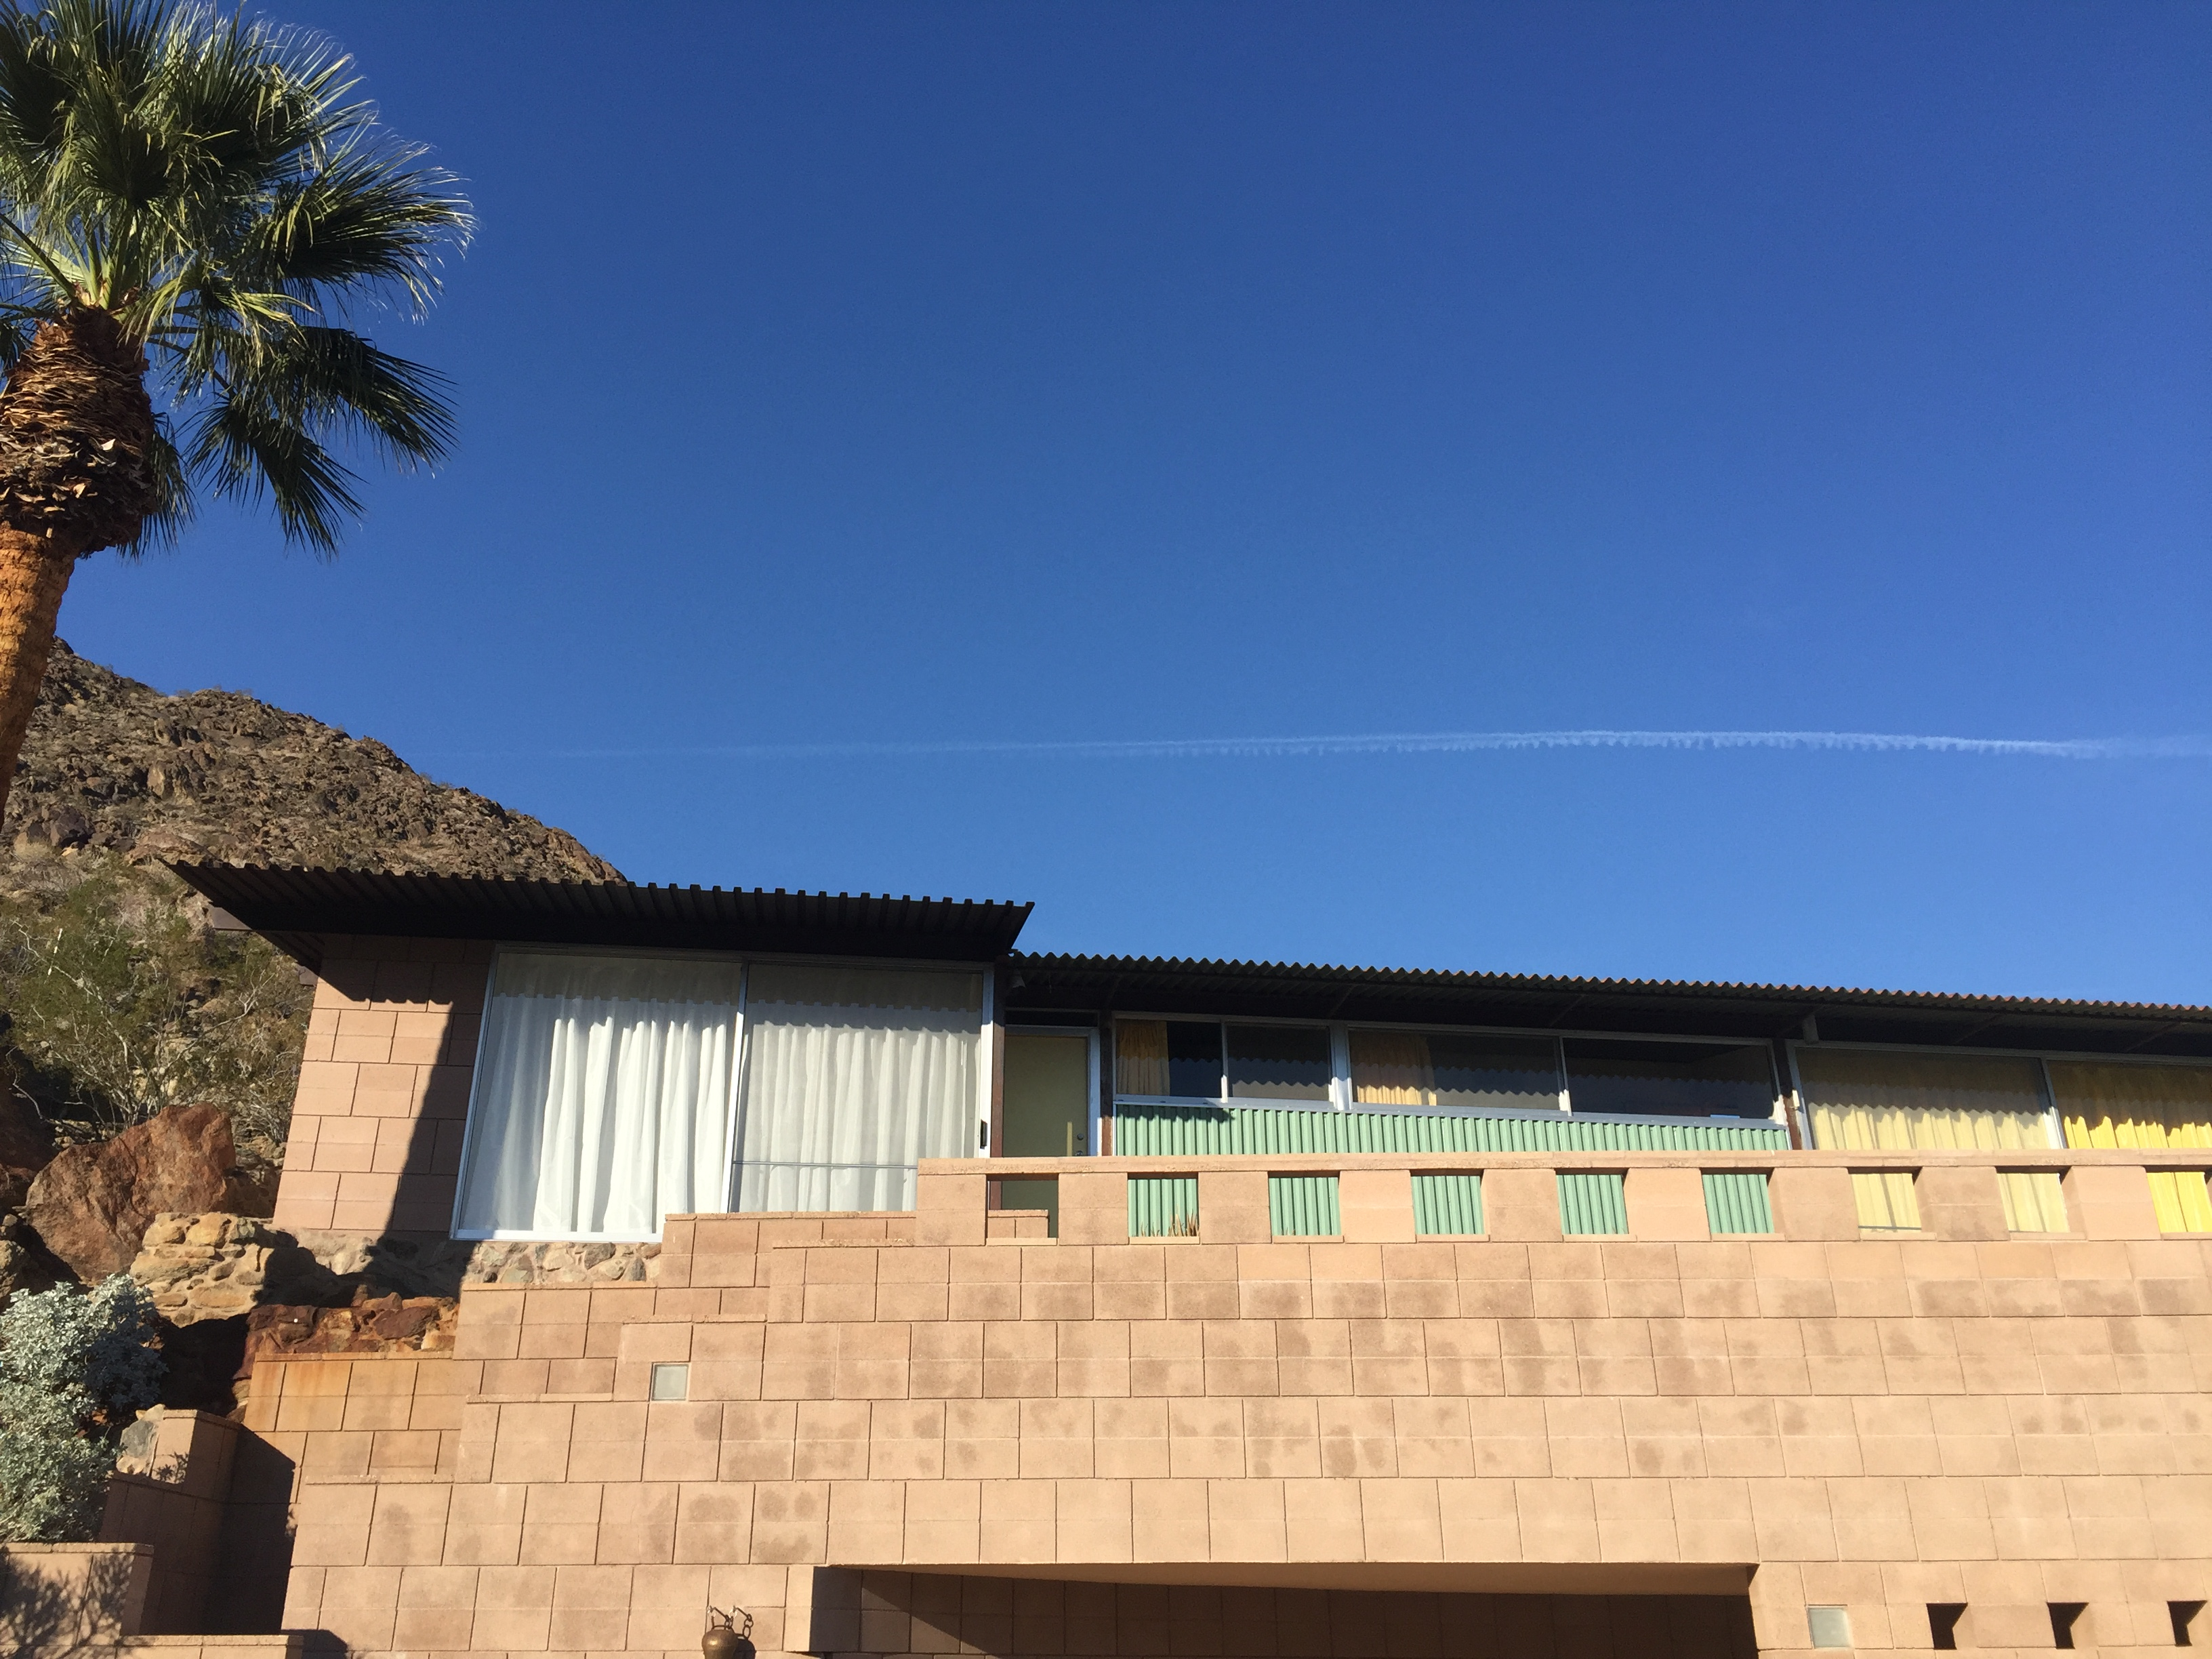 Video tour of Frey II House in Palm Springs